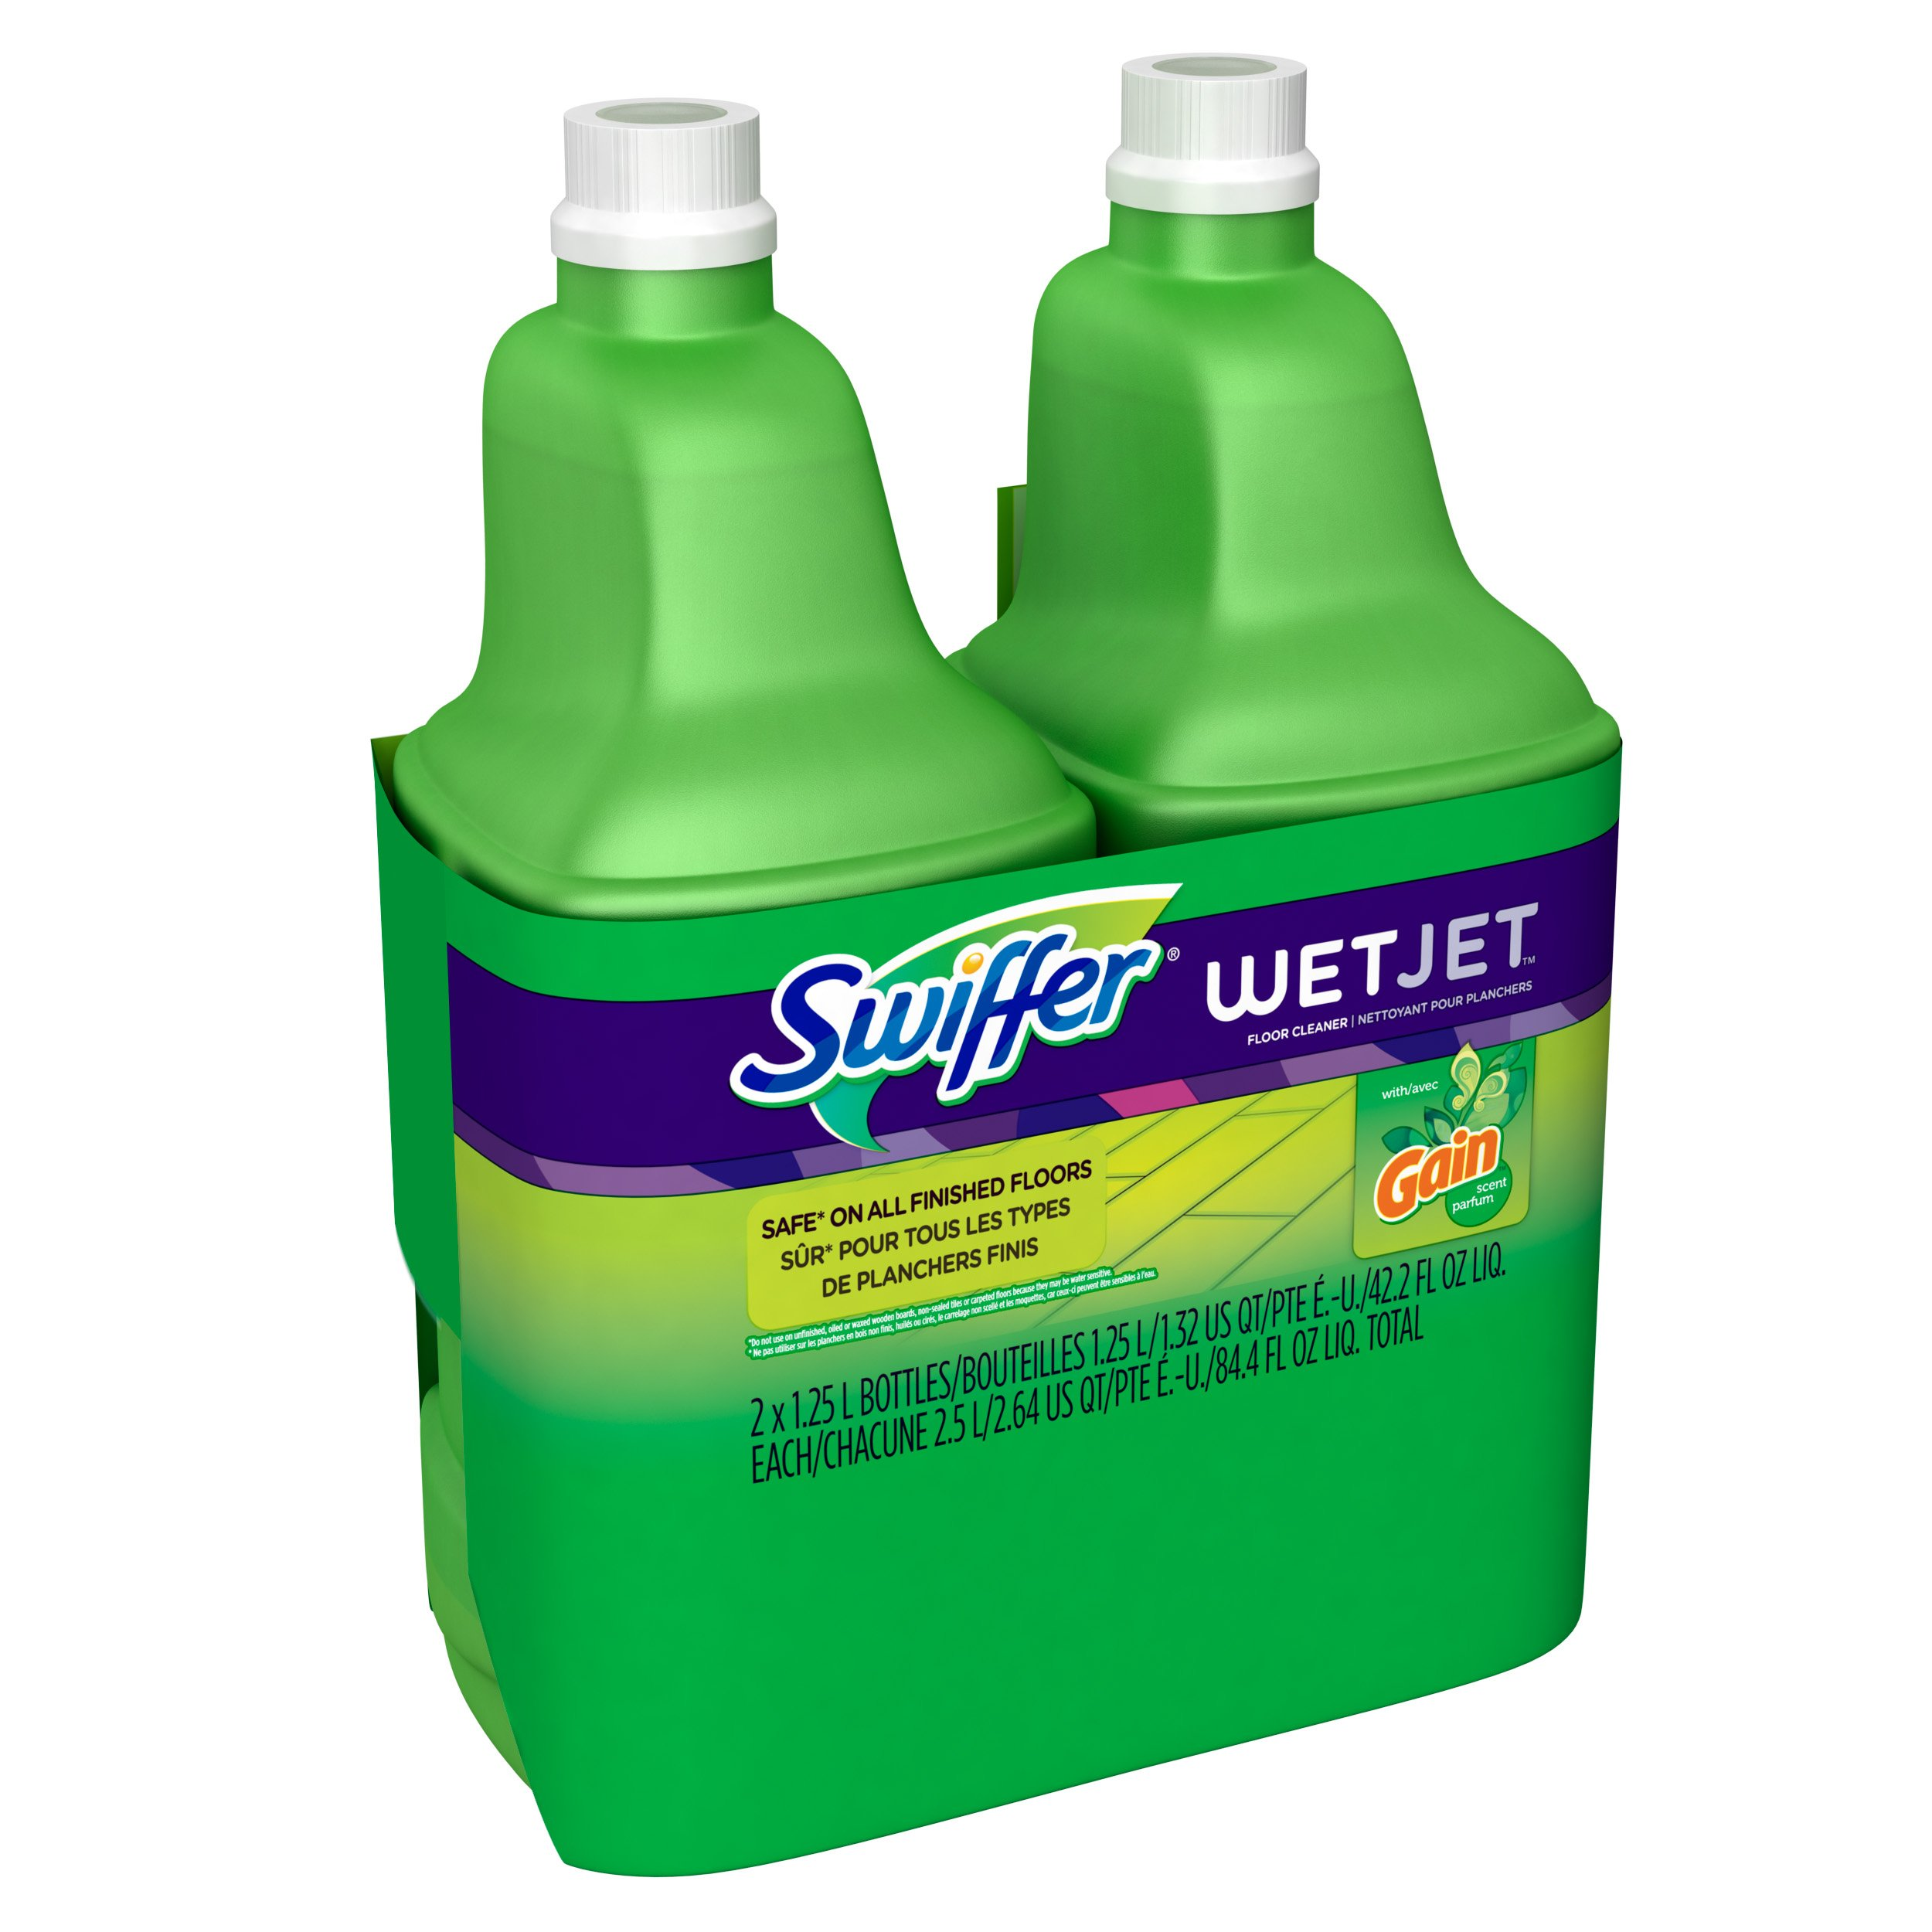 Swiffer Wet Jet Spray Mop Floor Cleaner Multi Purpose